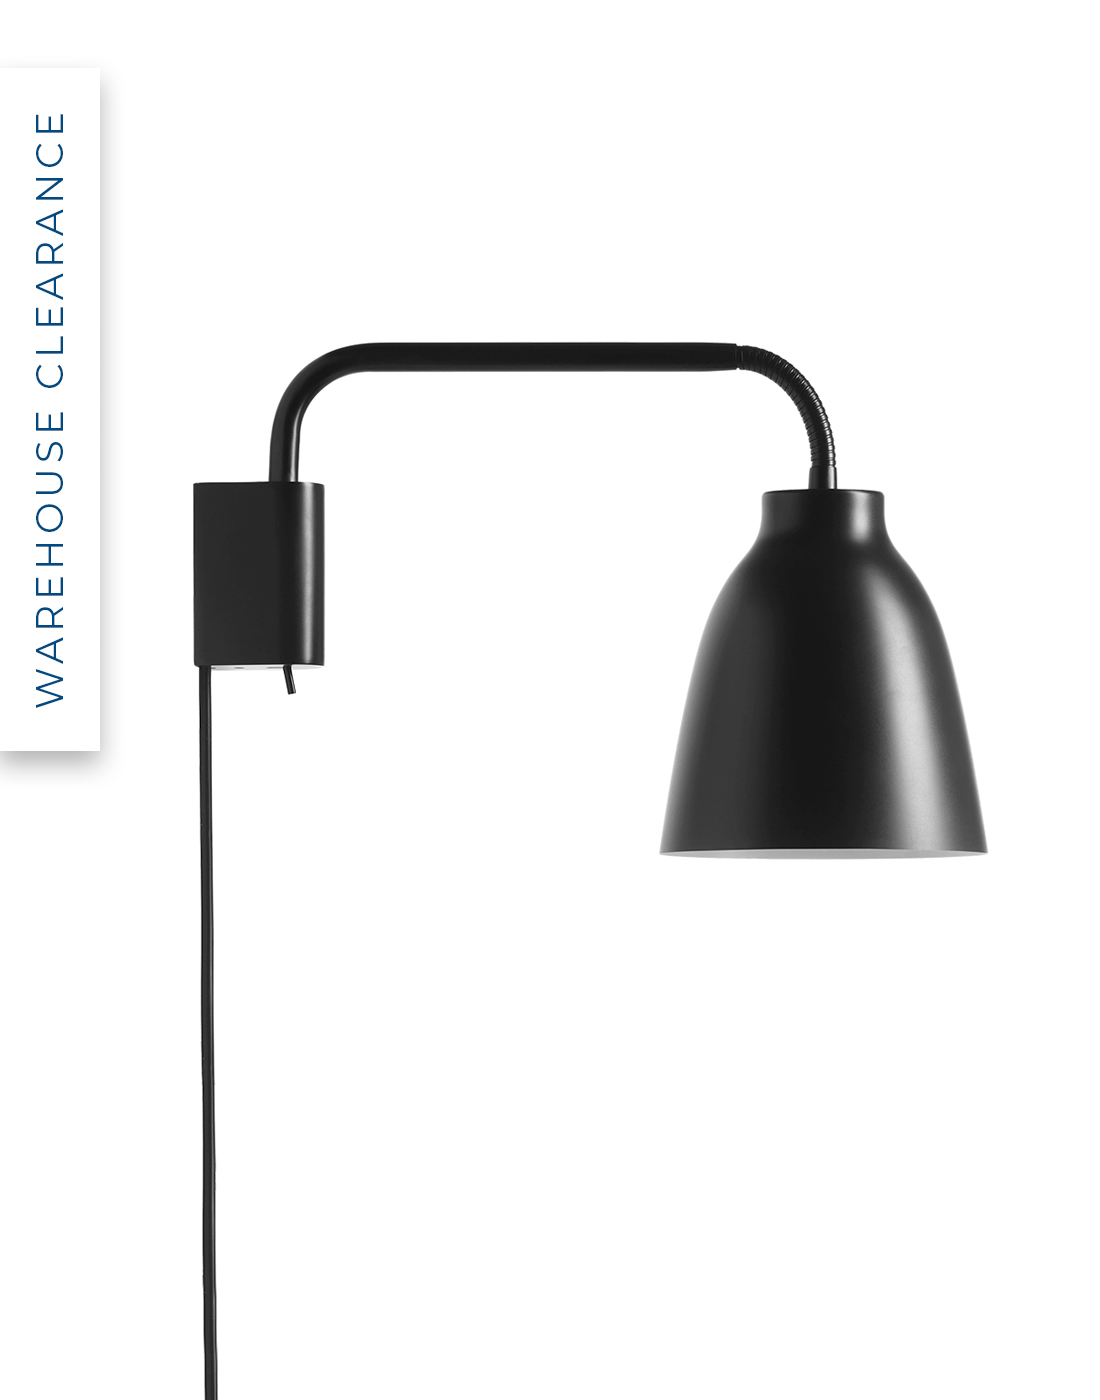 Warehouse Clearance Caravaggio read wall light by Light Years, 40% off